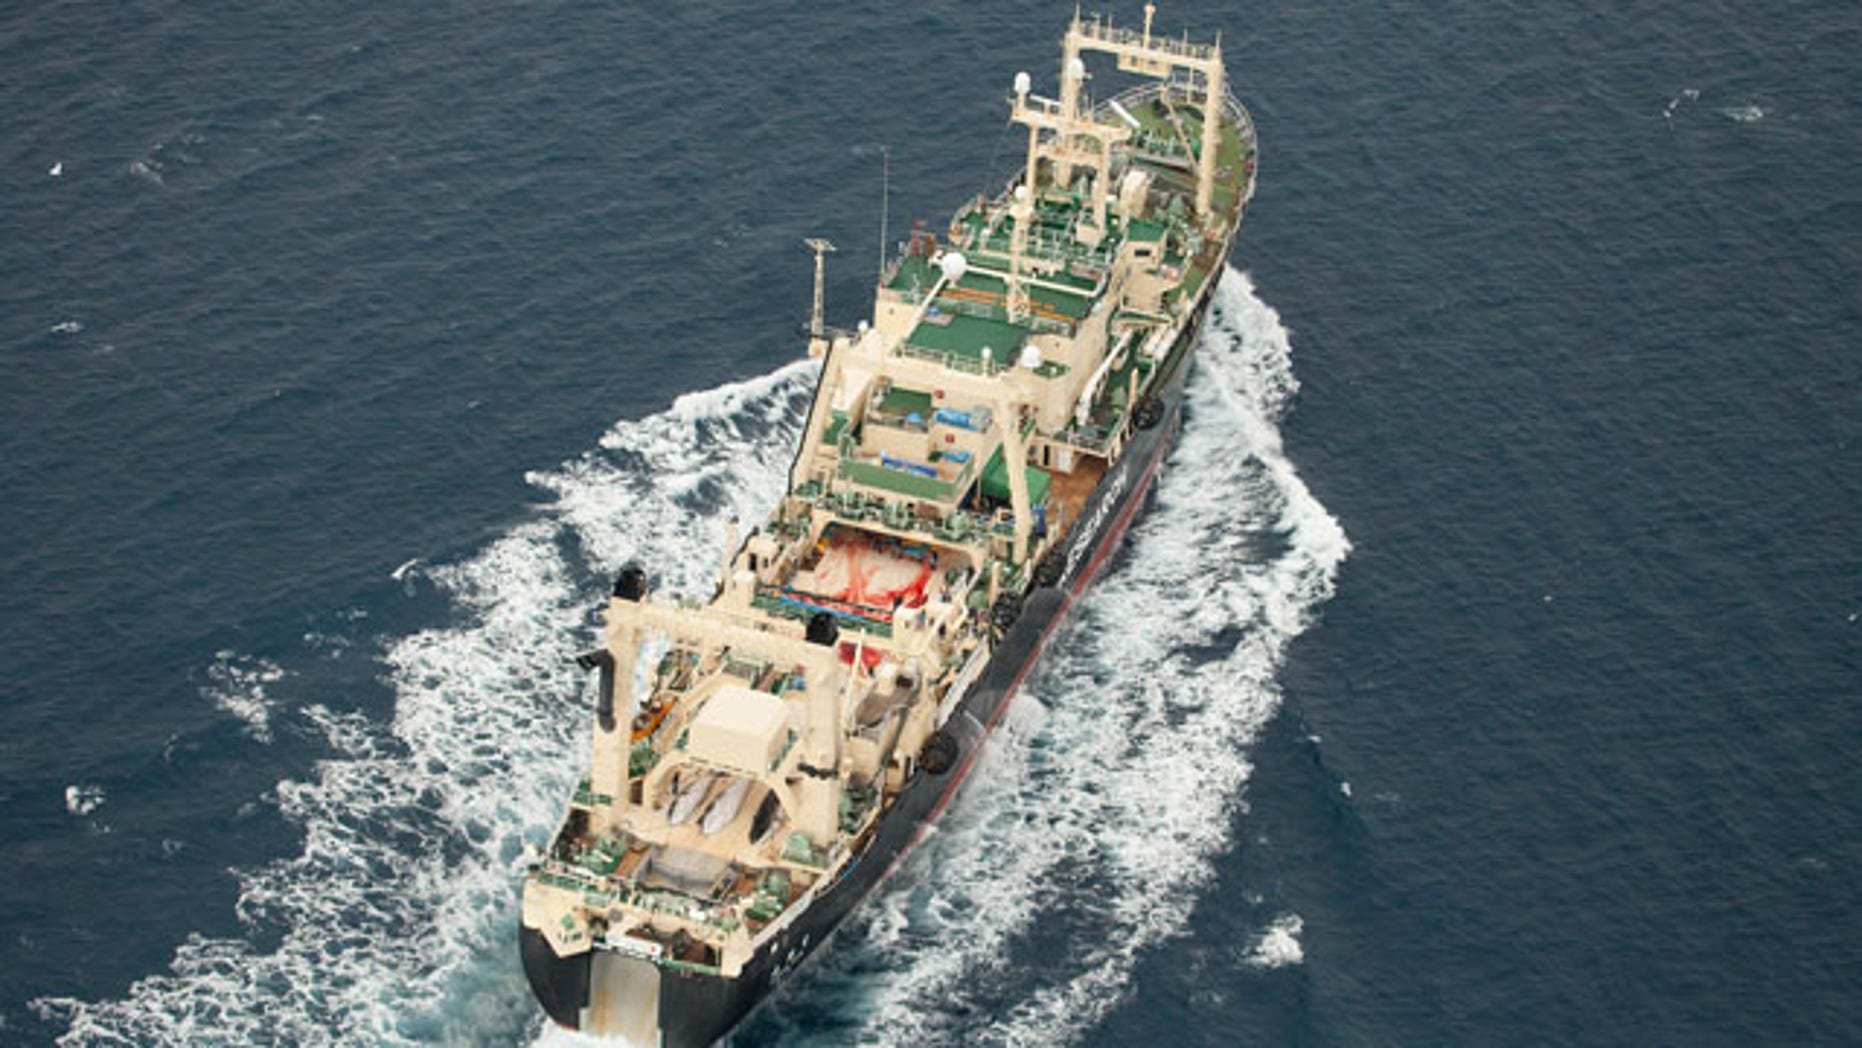 January 5, 2014:In this photo supplied by Sea Shepherd Australia, three dead minke whales lie on the deck of the Japanese whaling vessel Nisshin Maru as it travels through the Southern Ocean. Anti-whaling group Sea Shepherd said it caught up with all five of Japan's whaling vessels on Monday and found evidence of whale kills on one. Japan is allowed to hunt the animals for scientific purposes under an exception to a 1986 ban on whaling. But opponents argue the scientific program is a cover for commercial whaling because whale meat not used for study is sold as food in Japan. (AP Photo/Tim Watters, Sea Shepherd Australia)